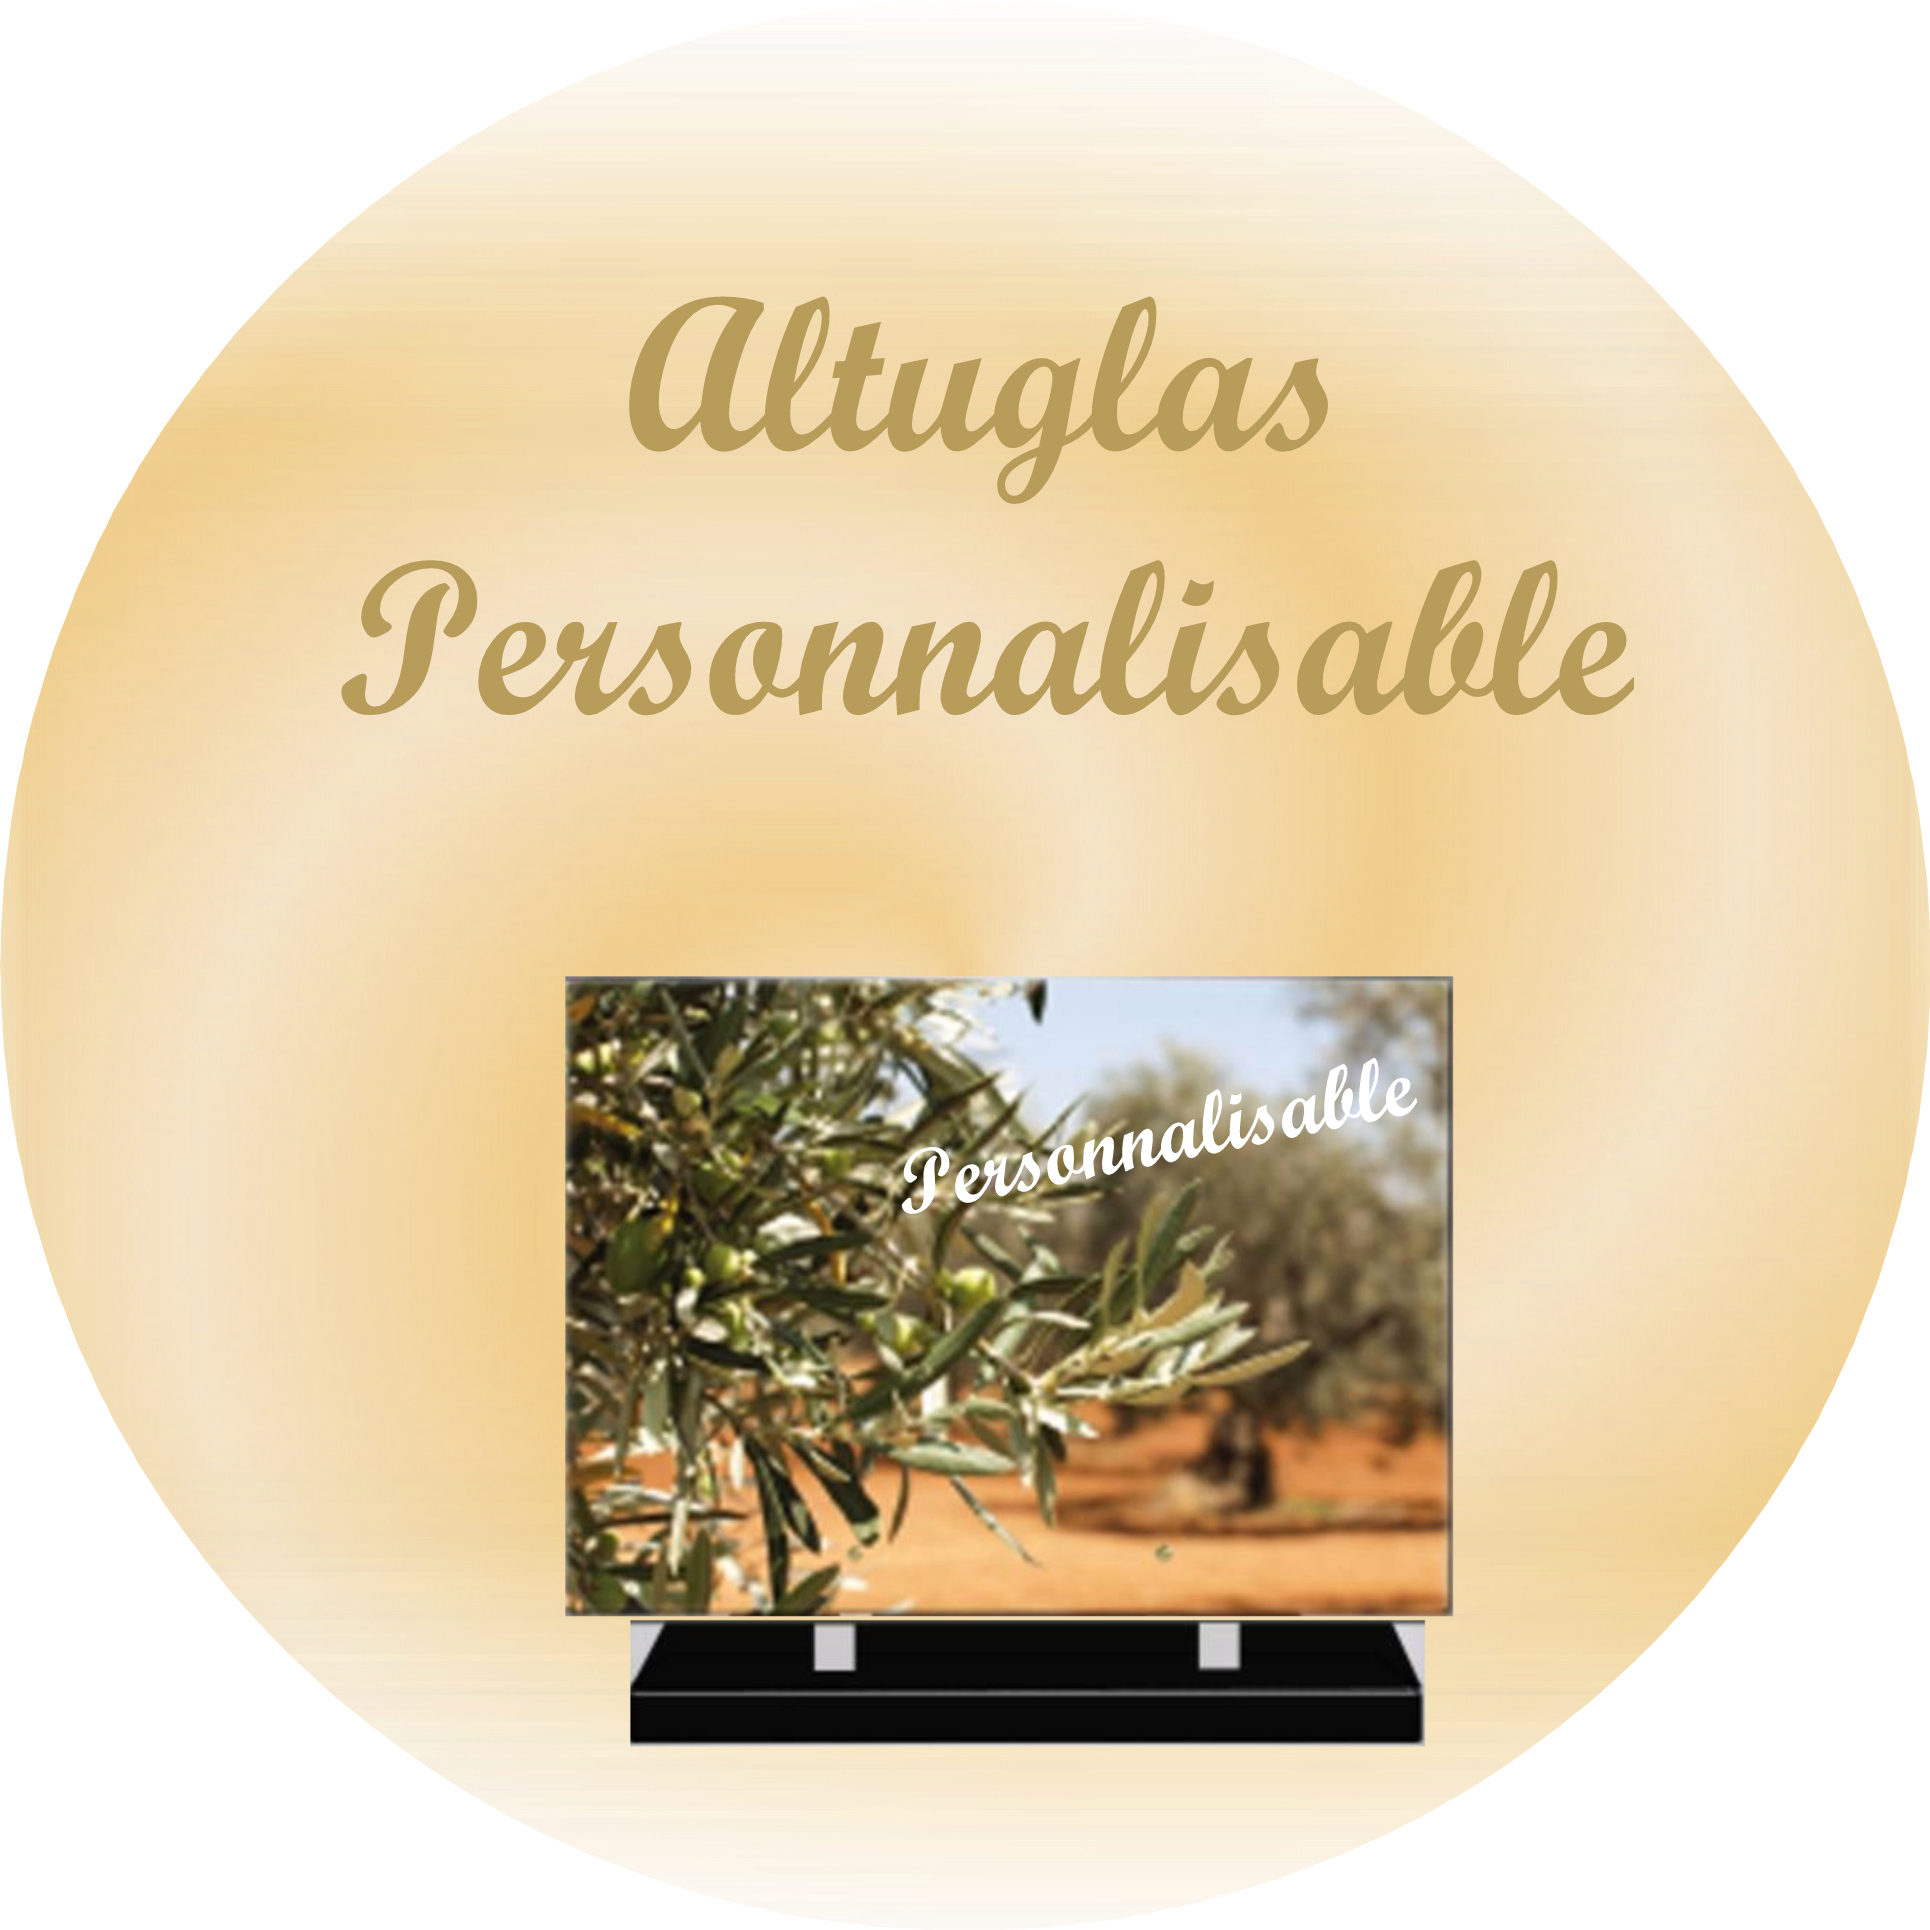 PLAQUES FUNERAIRES MODERNES PERSONNALISABLES RECTANGLE ATTIN